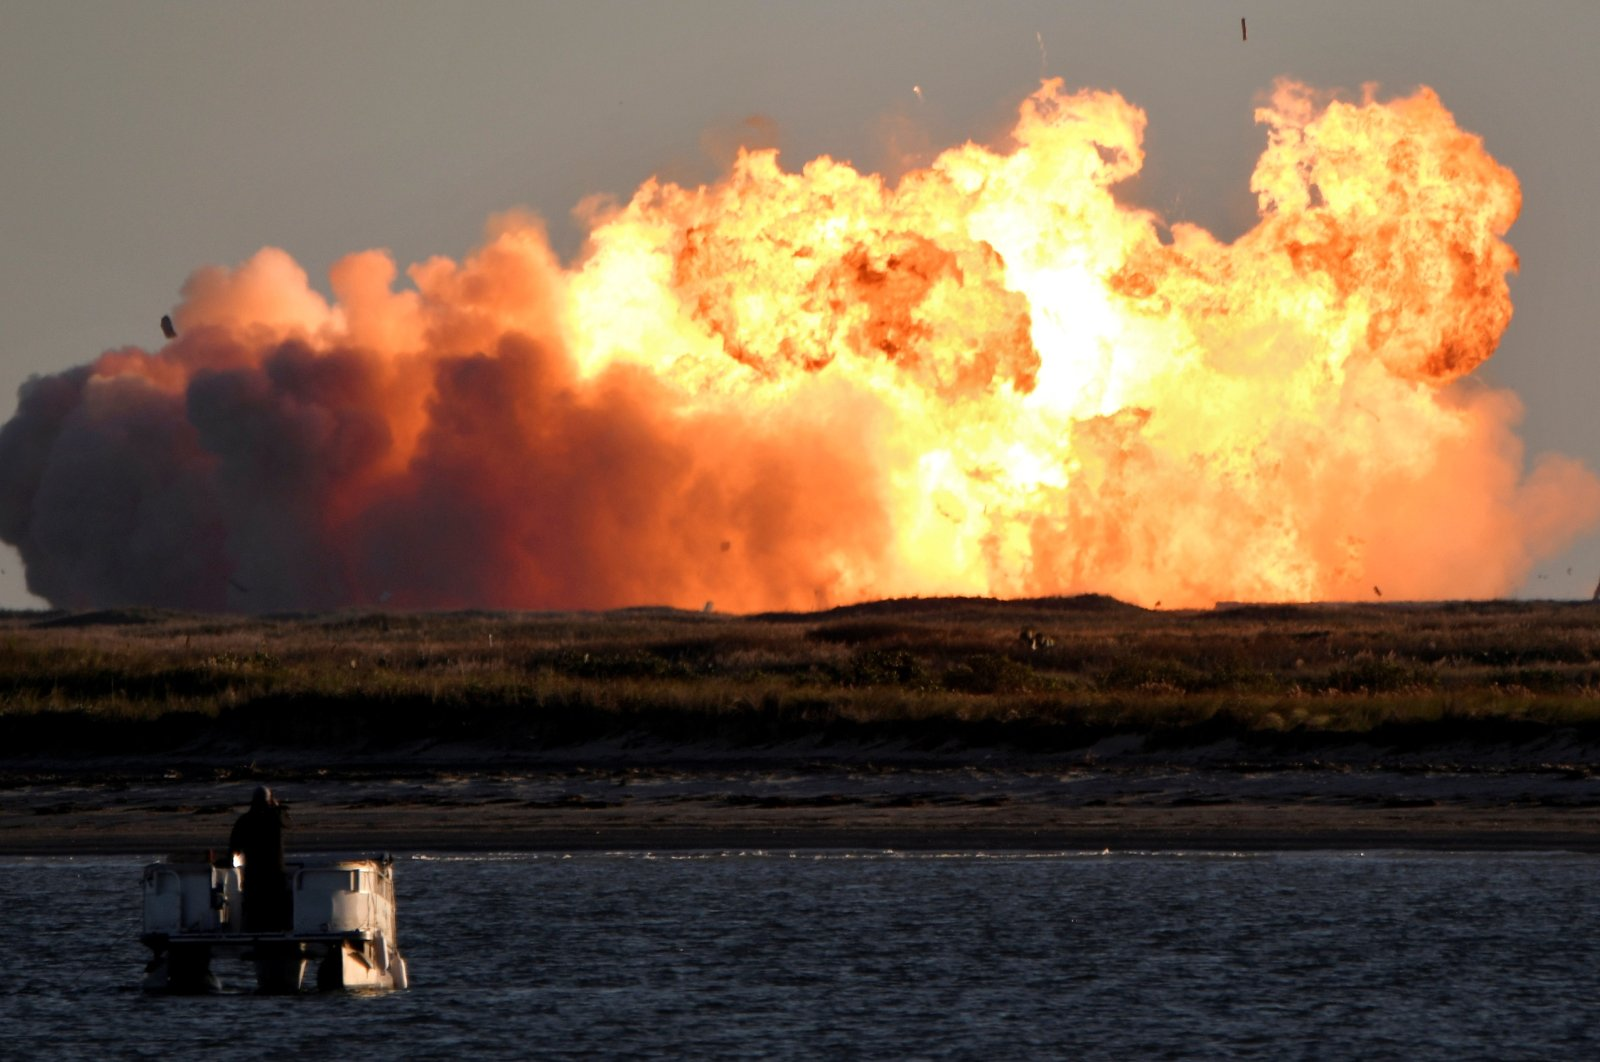 SpaceX's first super heavy-lift Starship SN8 rocket explodes during a return-landing attempt after it launched from their facility on a test flight in Boca Chica, Texas, U.S., Dec. 9, 2020. (Reuters Photo)